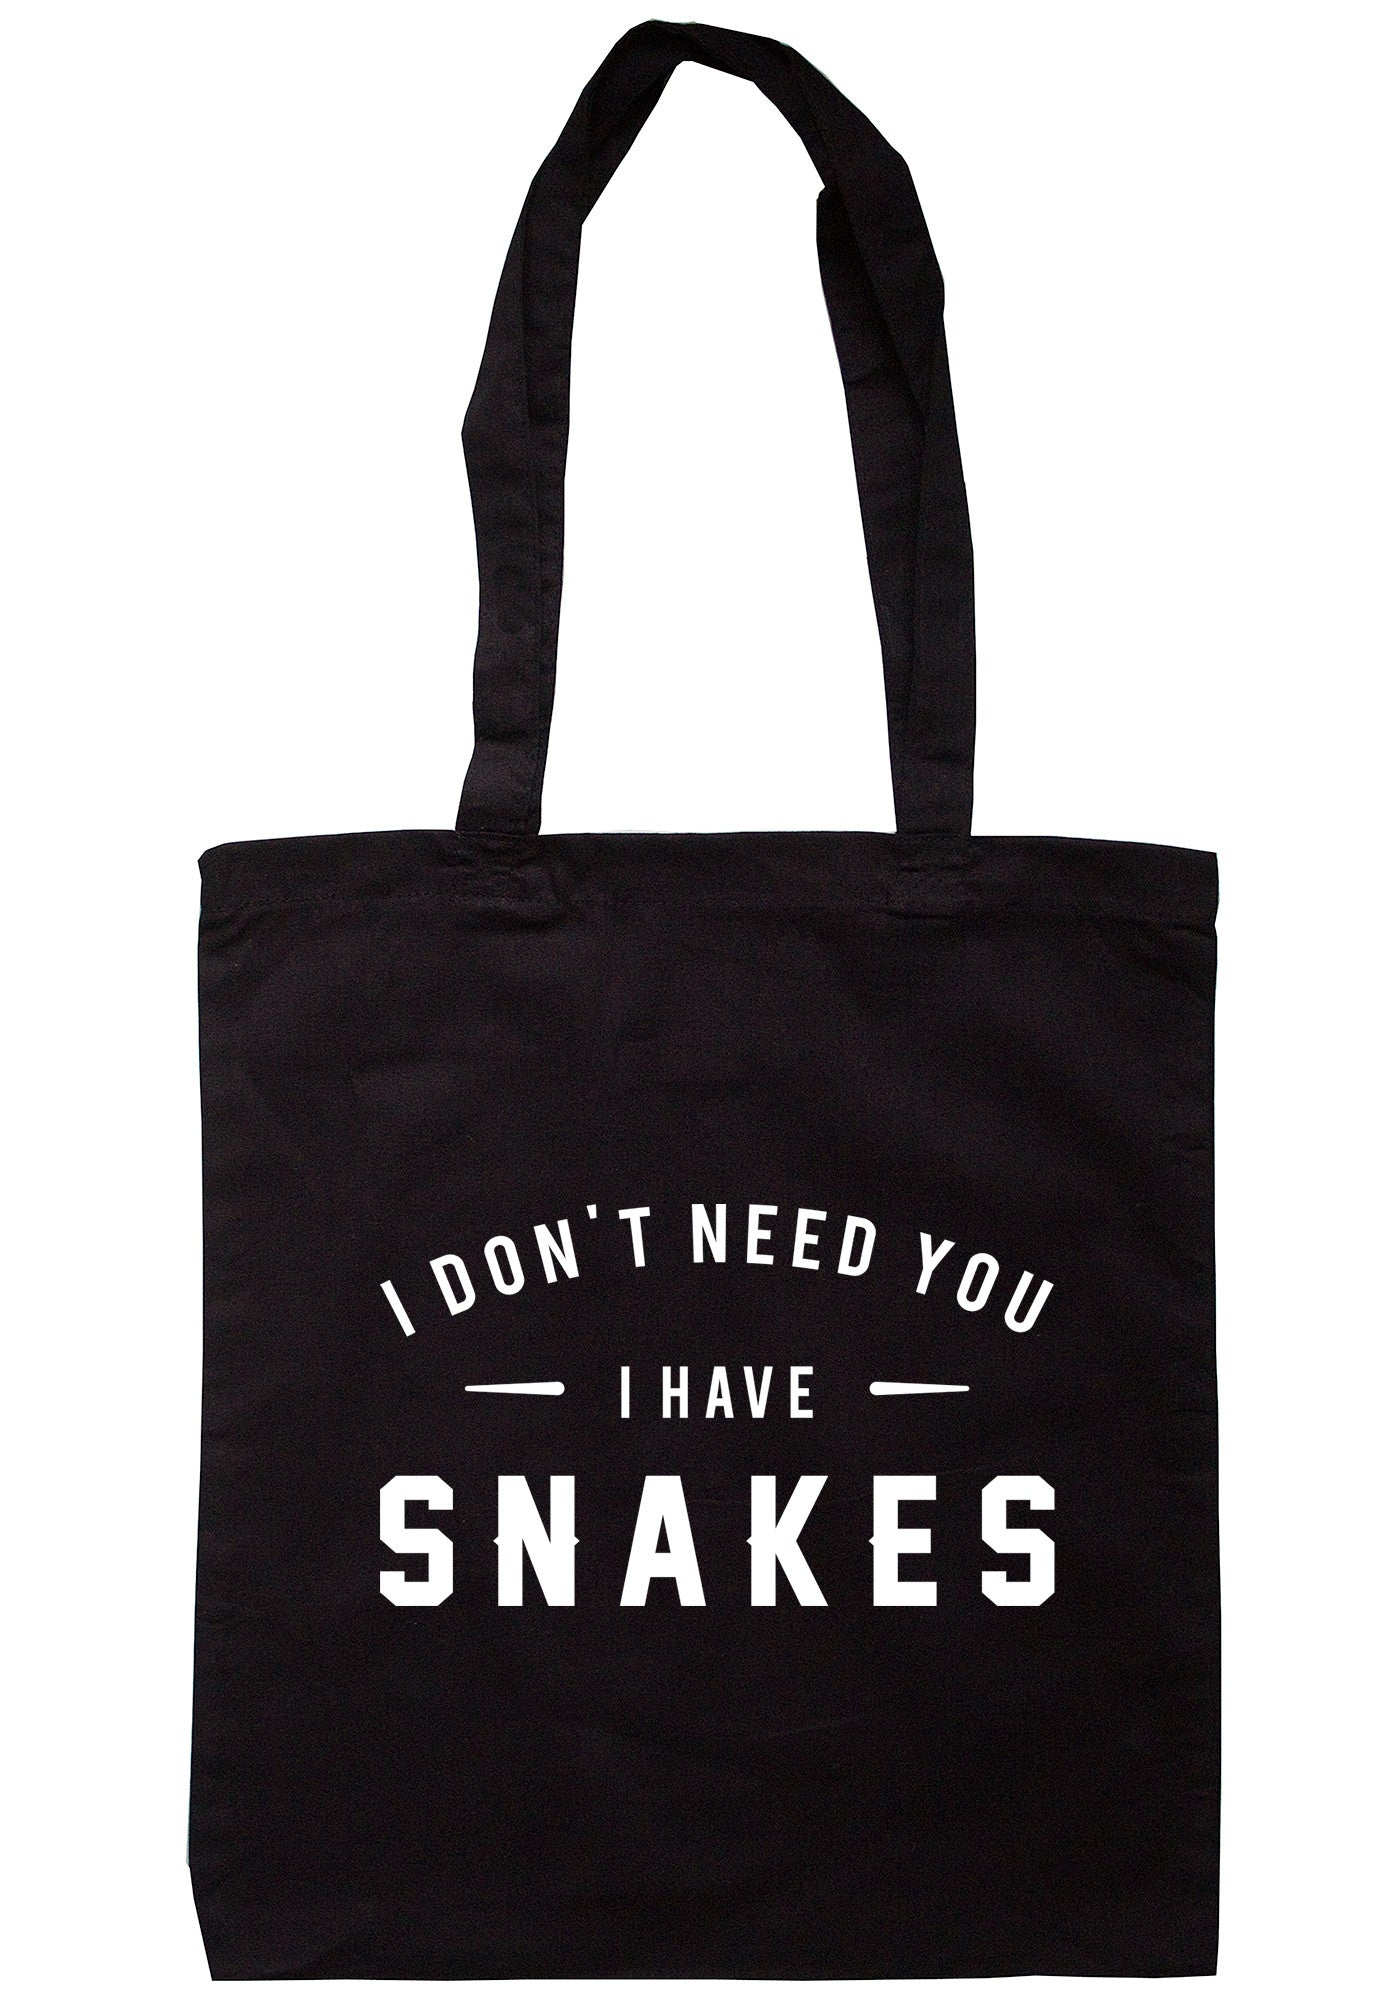 I Don't Need You I Have Snakes Tote Bag TB0615 - Illustrated Identity Ltd.